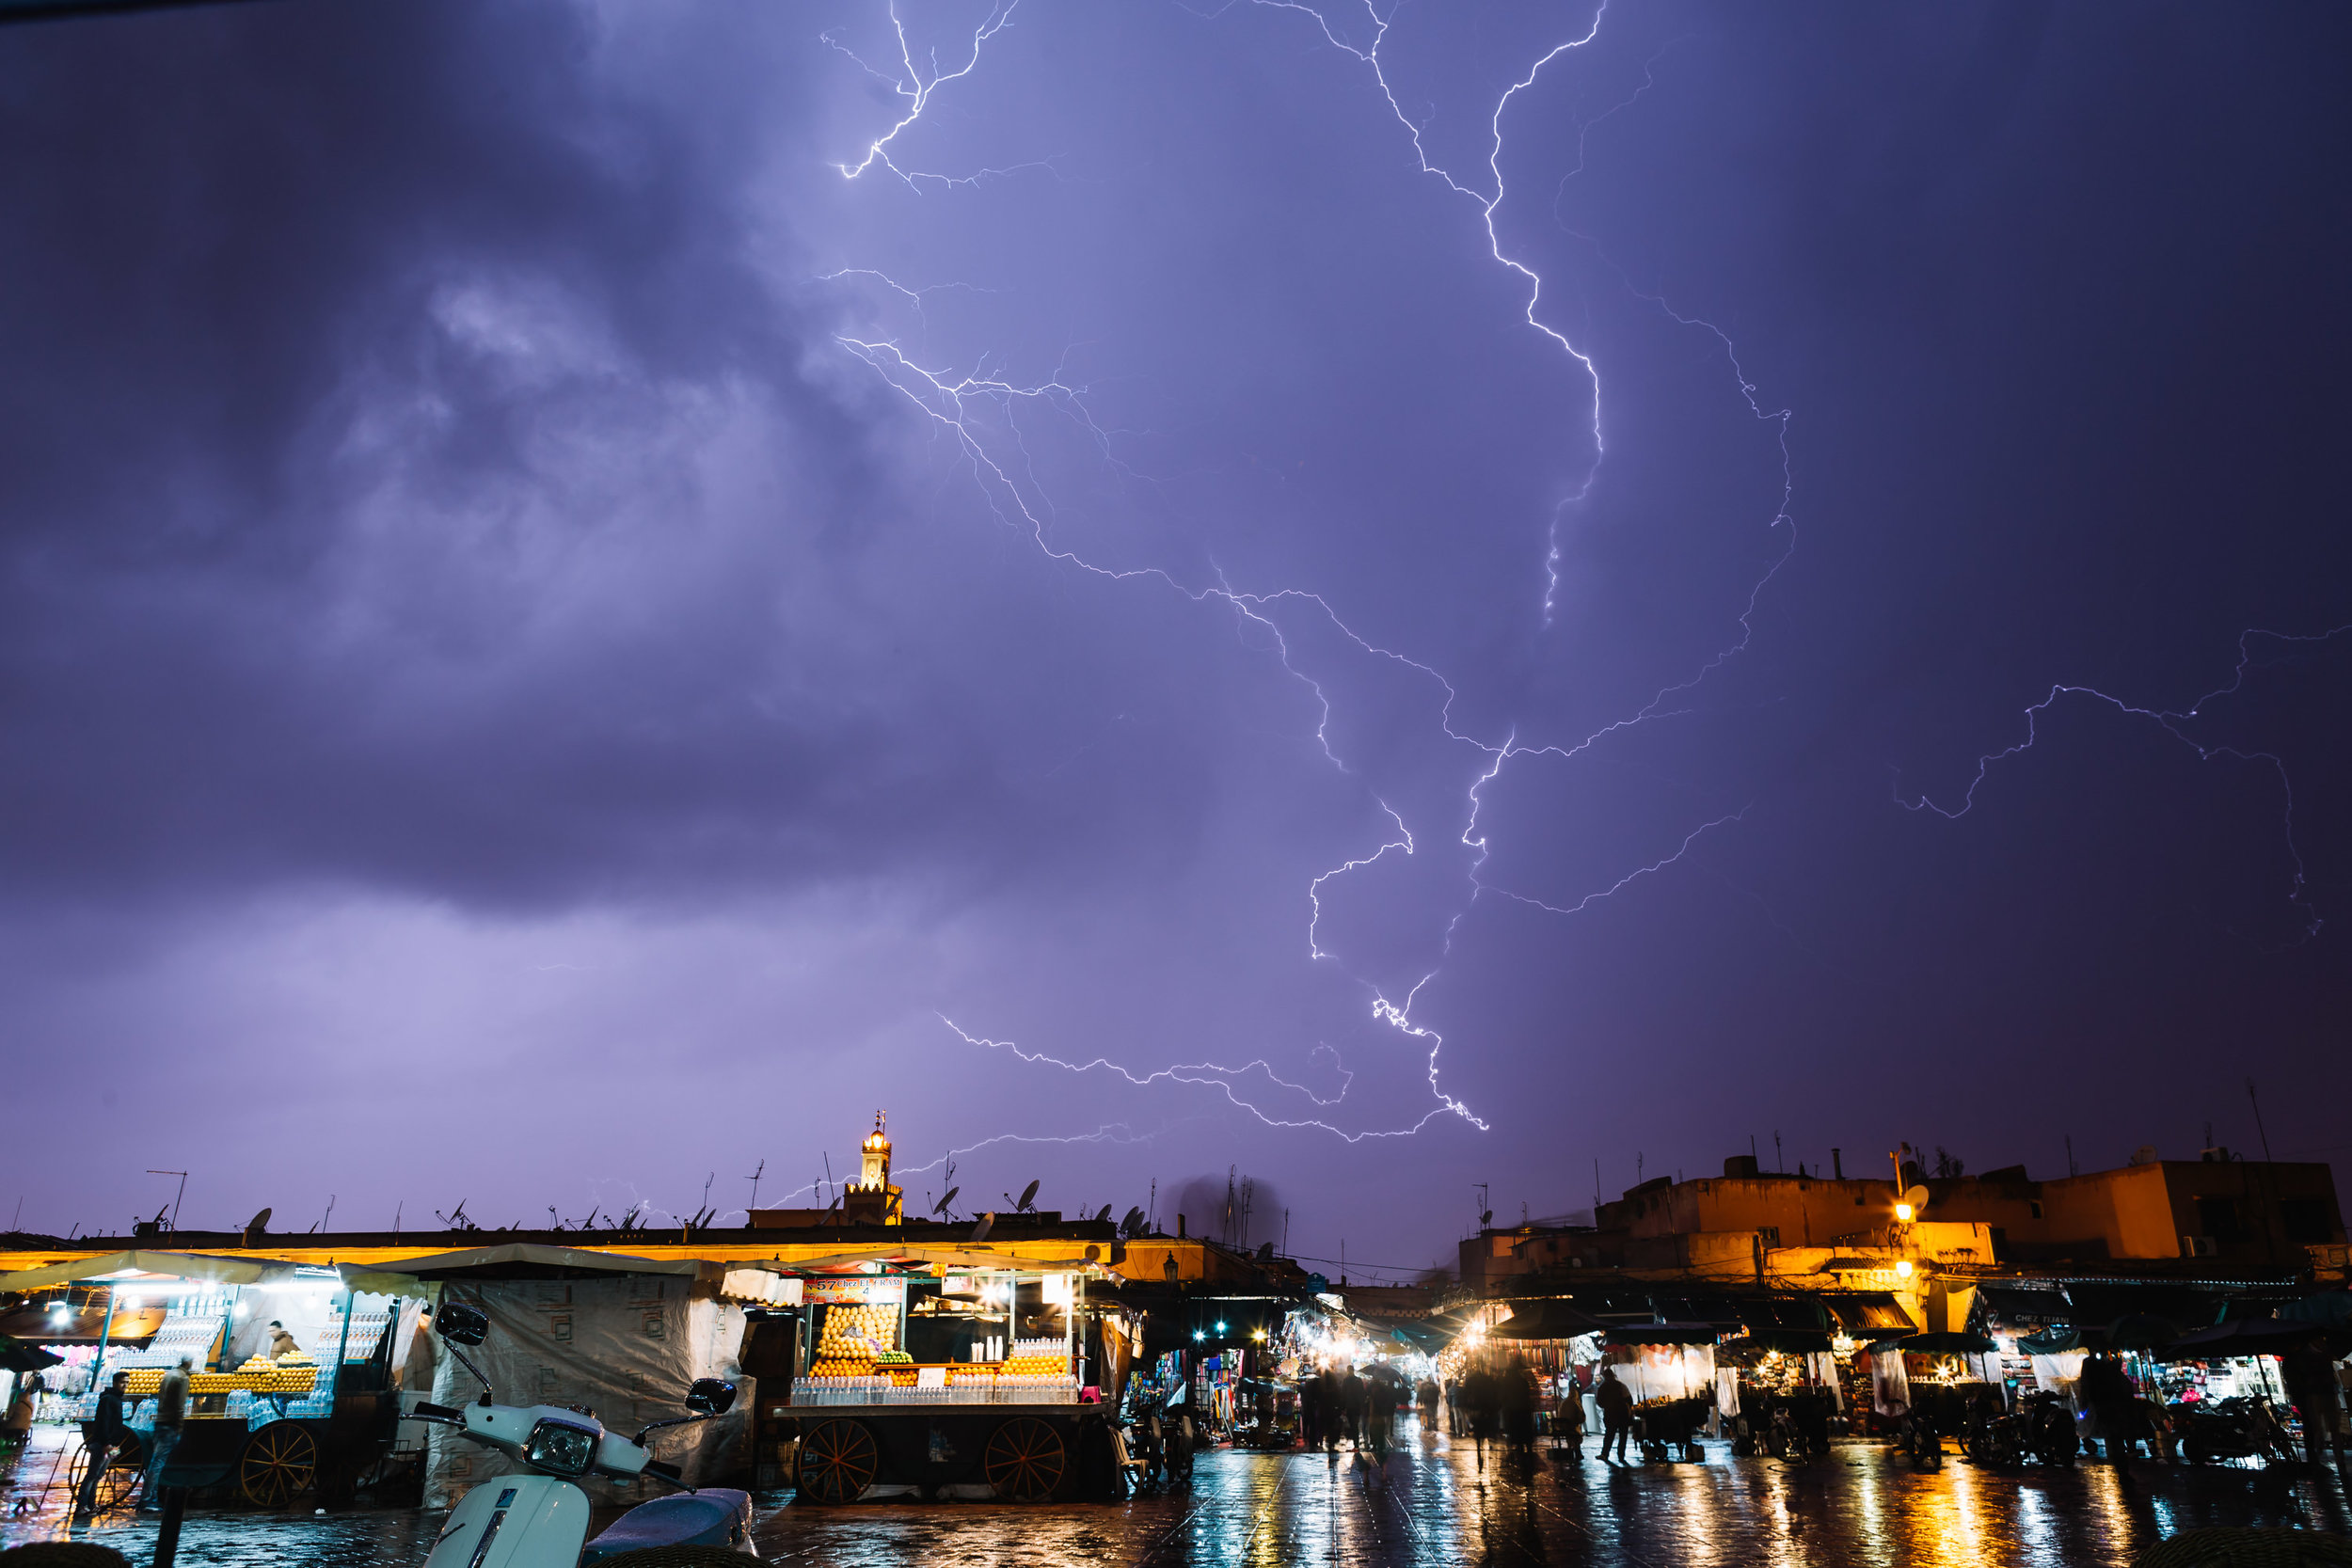 Storm in Marrakech, Morocco. 2014